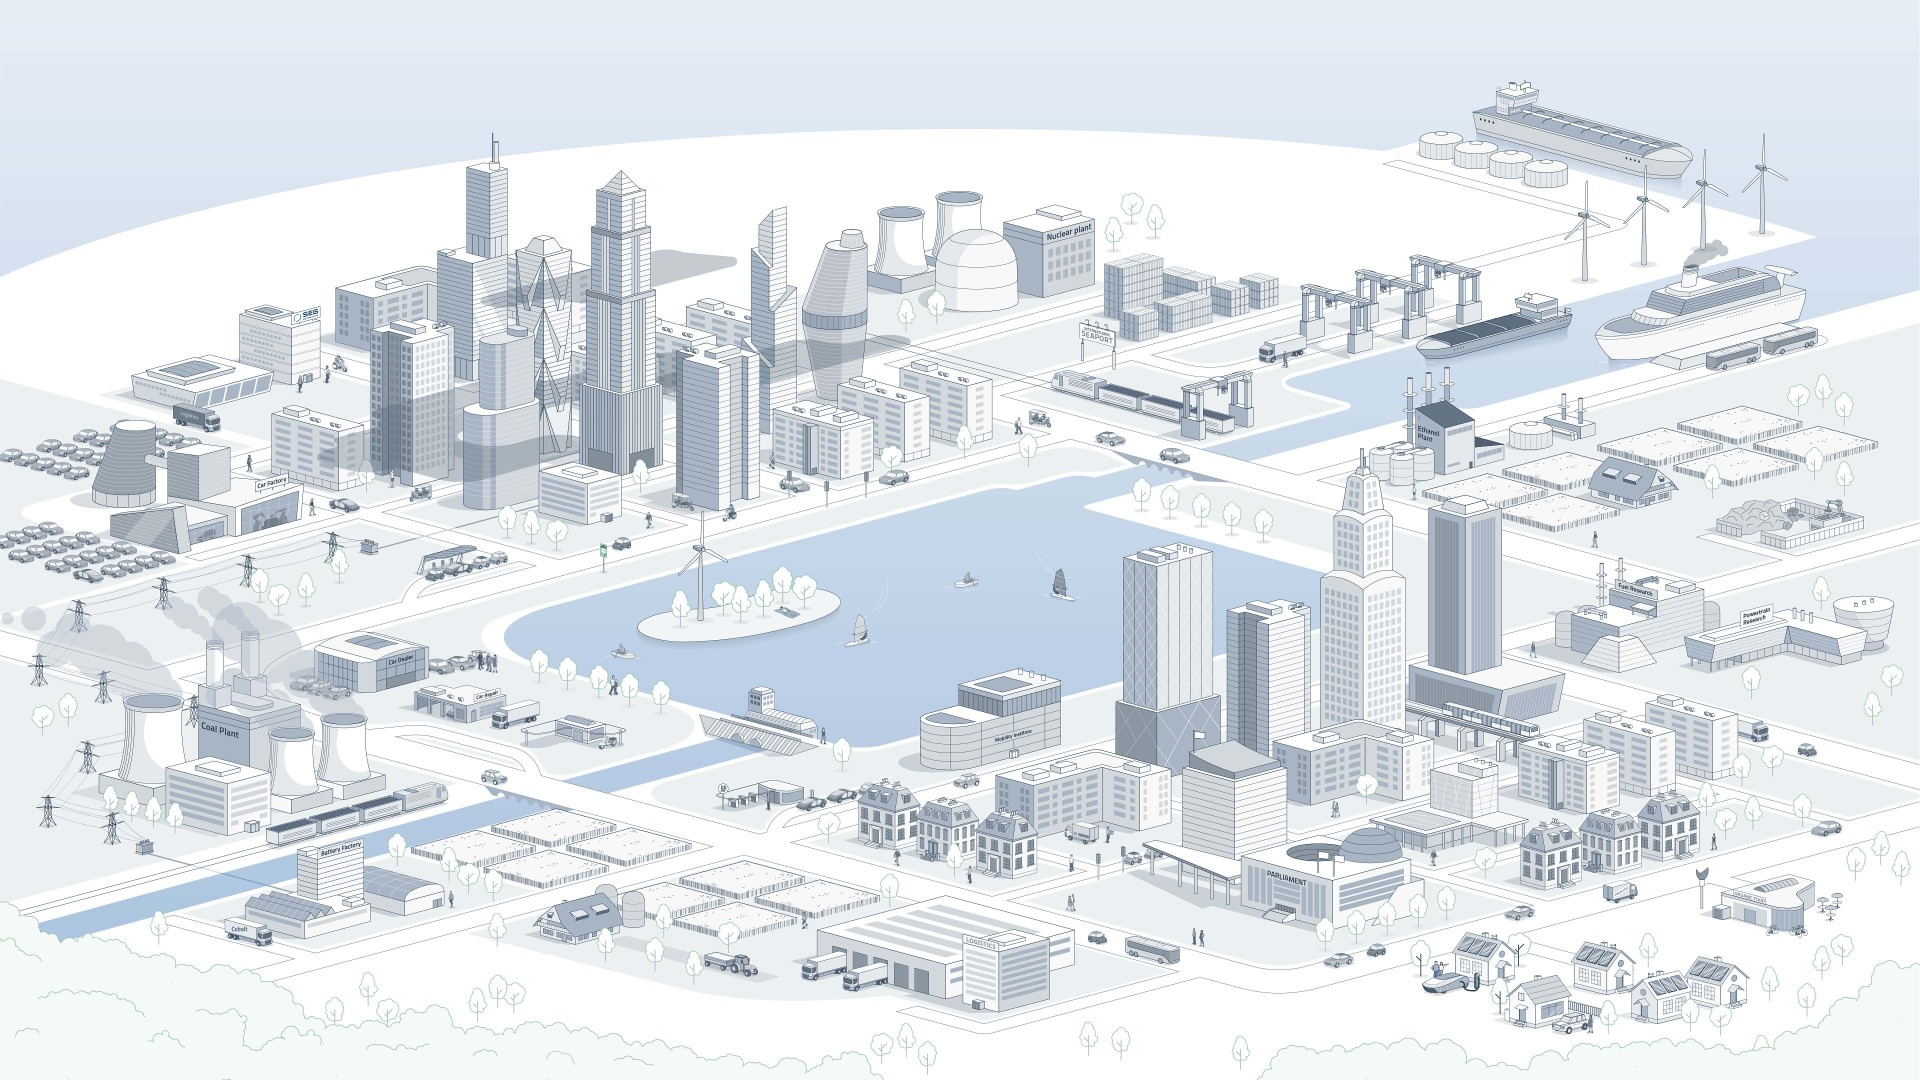 Graphic city visualizes transformation of the automotive industry